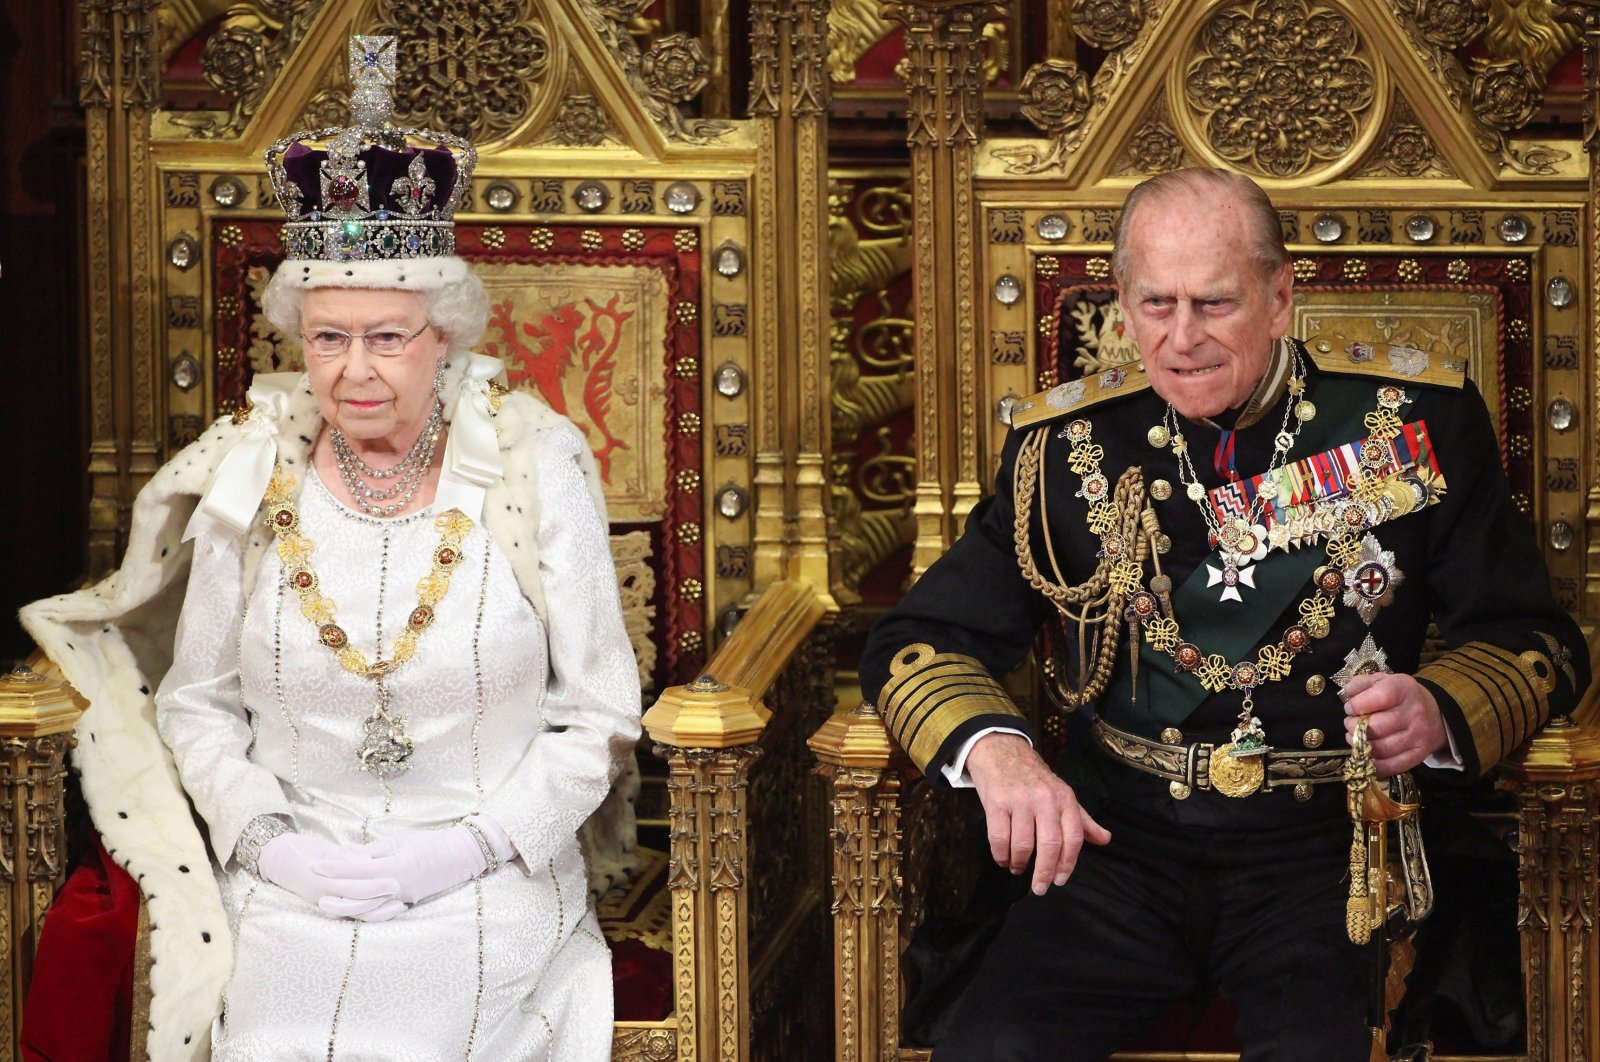 Britain's Queen Elizabeth waits to read the Queen's Speech to lawmakers in the House of Lords, next to Prince Philip, during the State Opening of Parliament in central London May 9, 2012. (Reuters Photo)